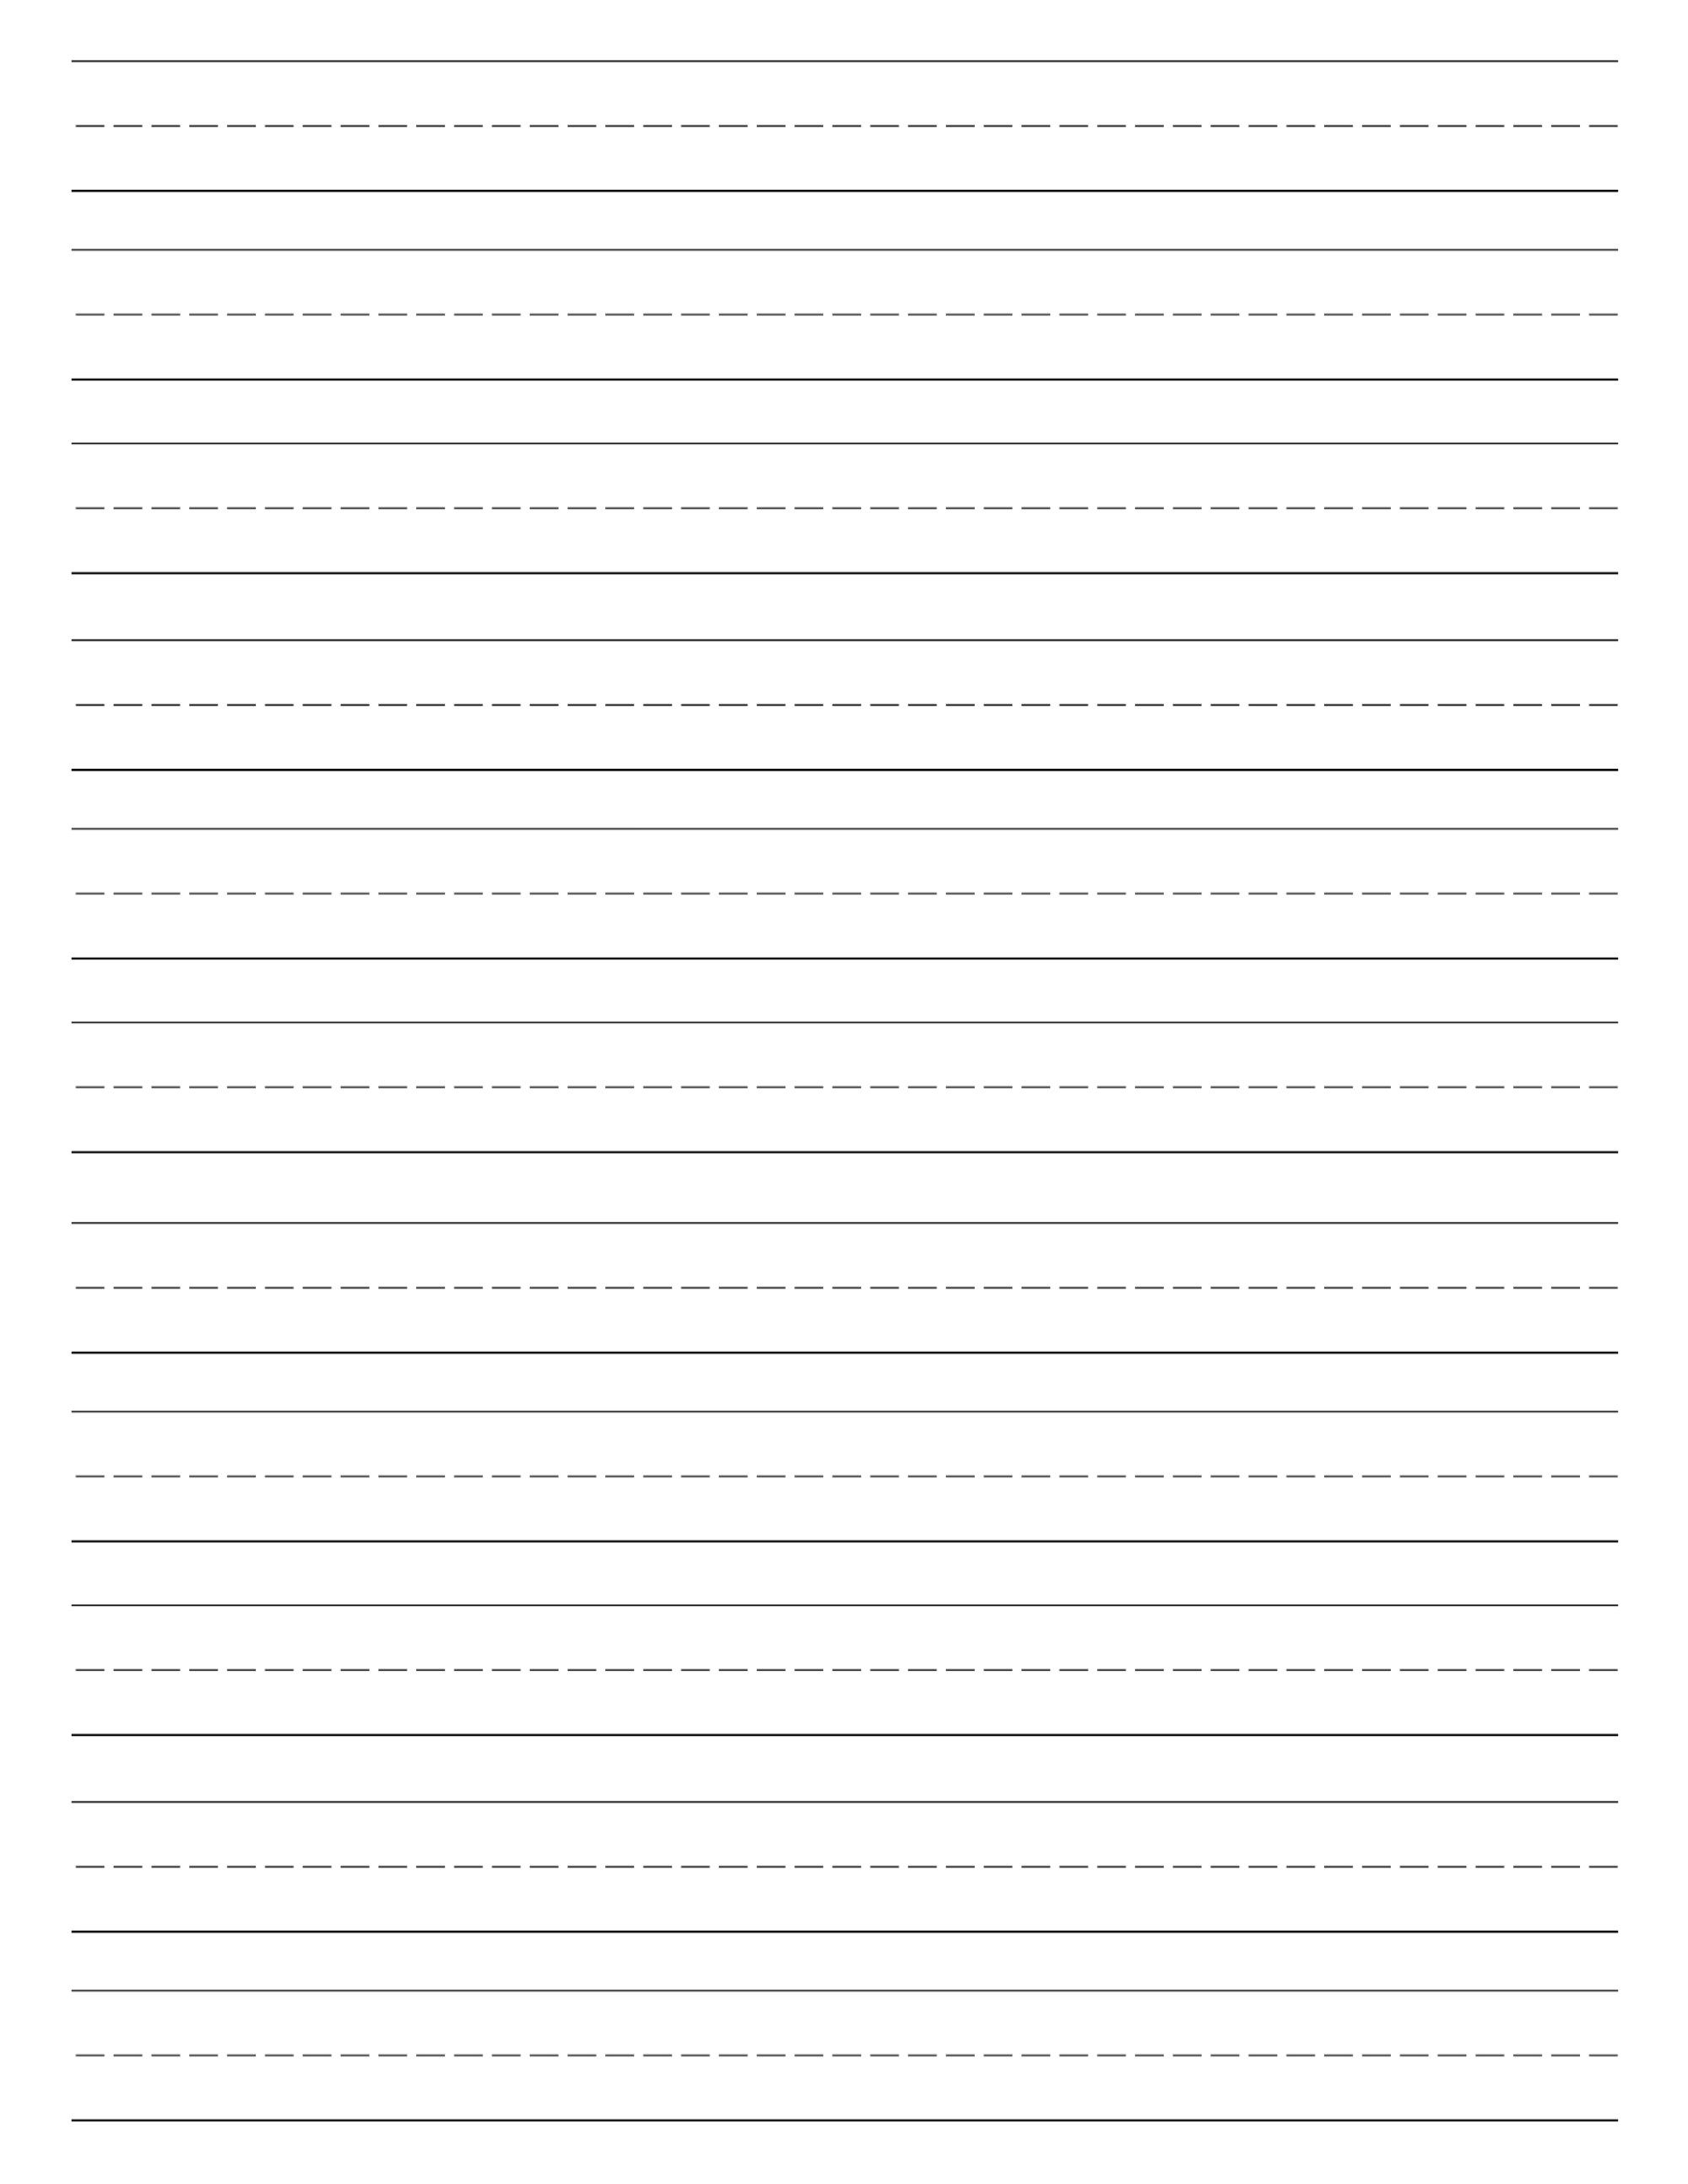 Blank Handwriting Paper - Koran.sticken.co | Blank Handwriting Worksheets Printable Free